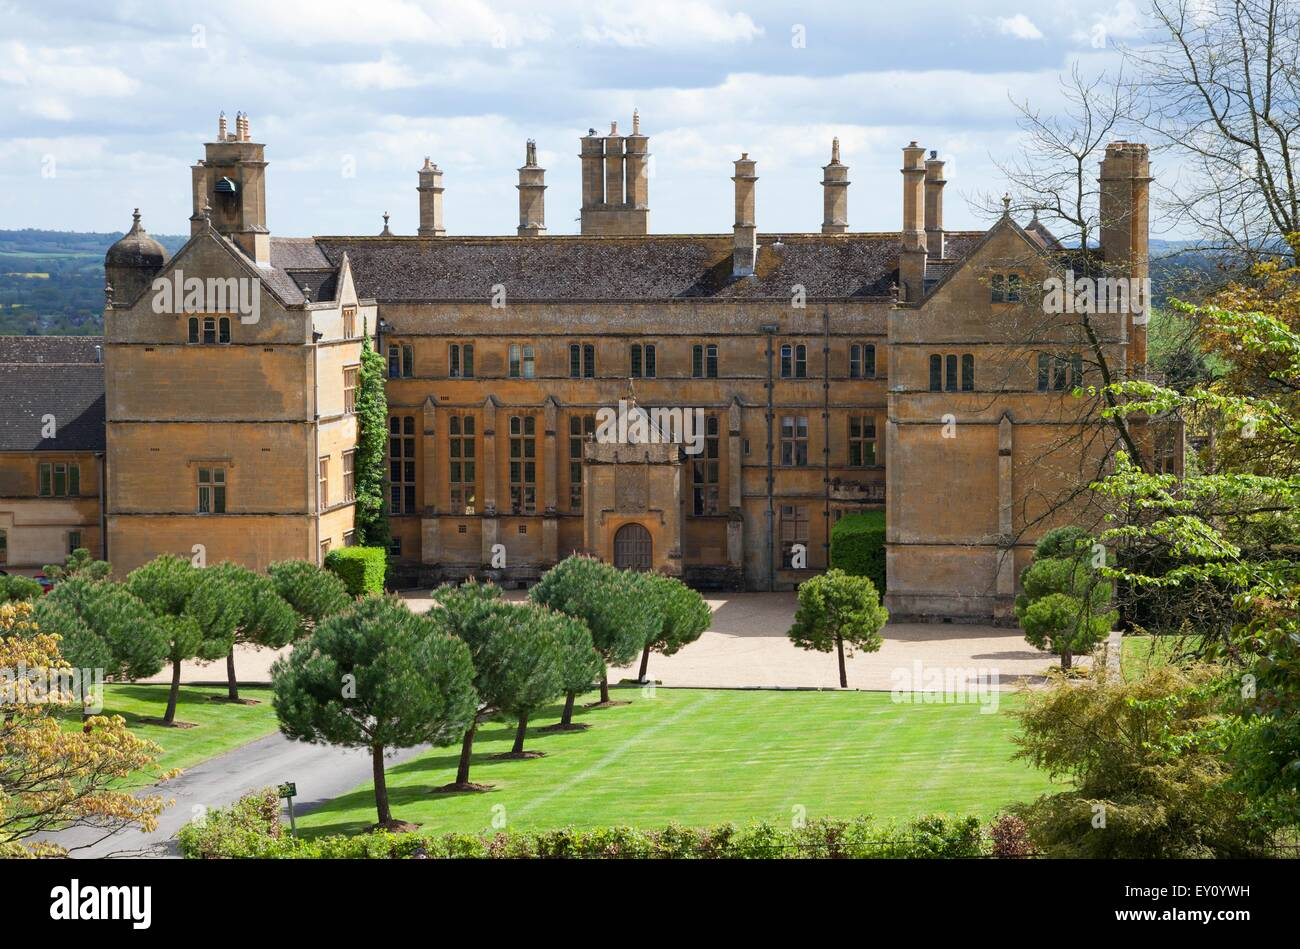 Cotswold stately home in Batsford near Moreton-in-Marsh, Gloucestershire, England. - Stock Image